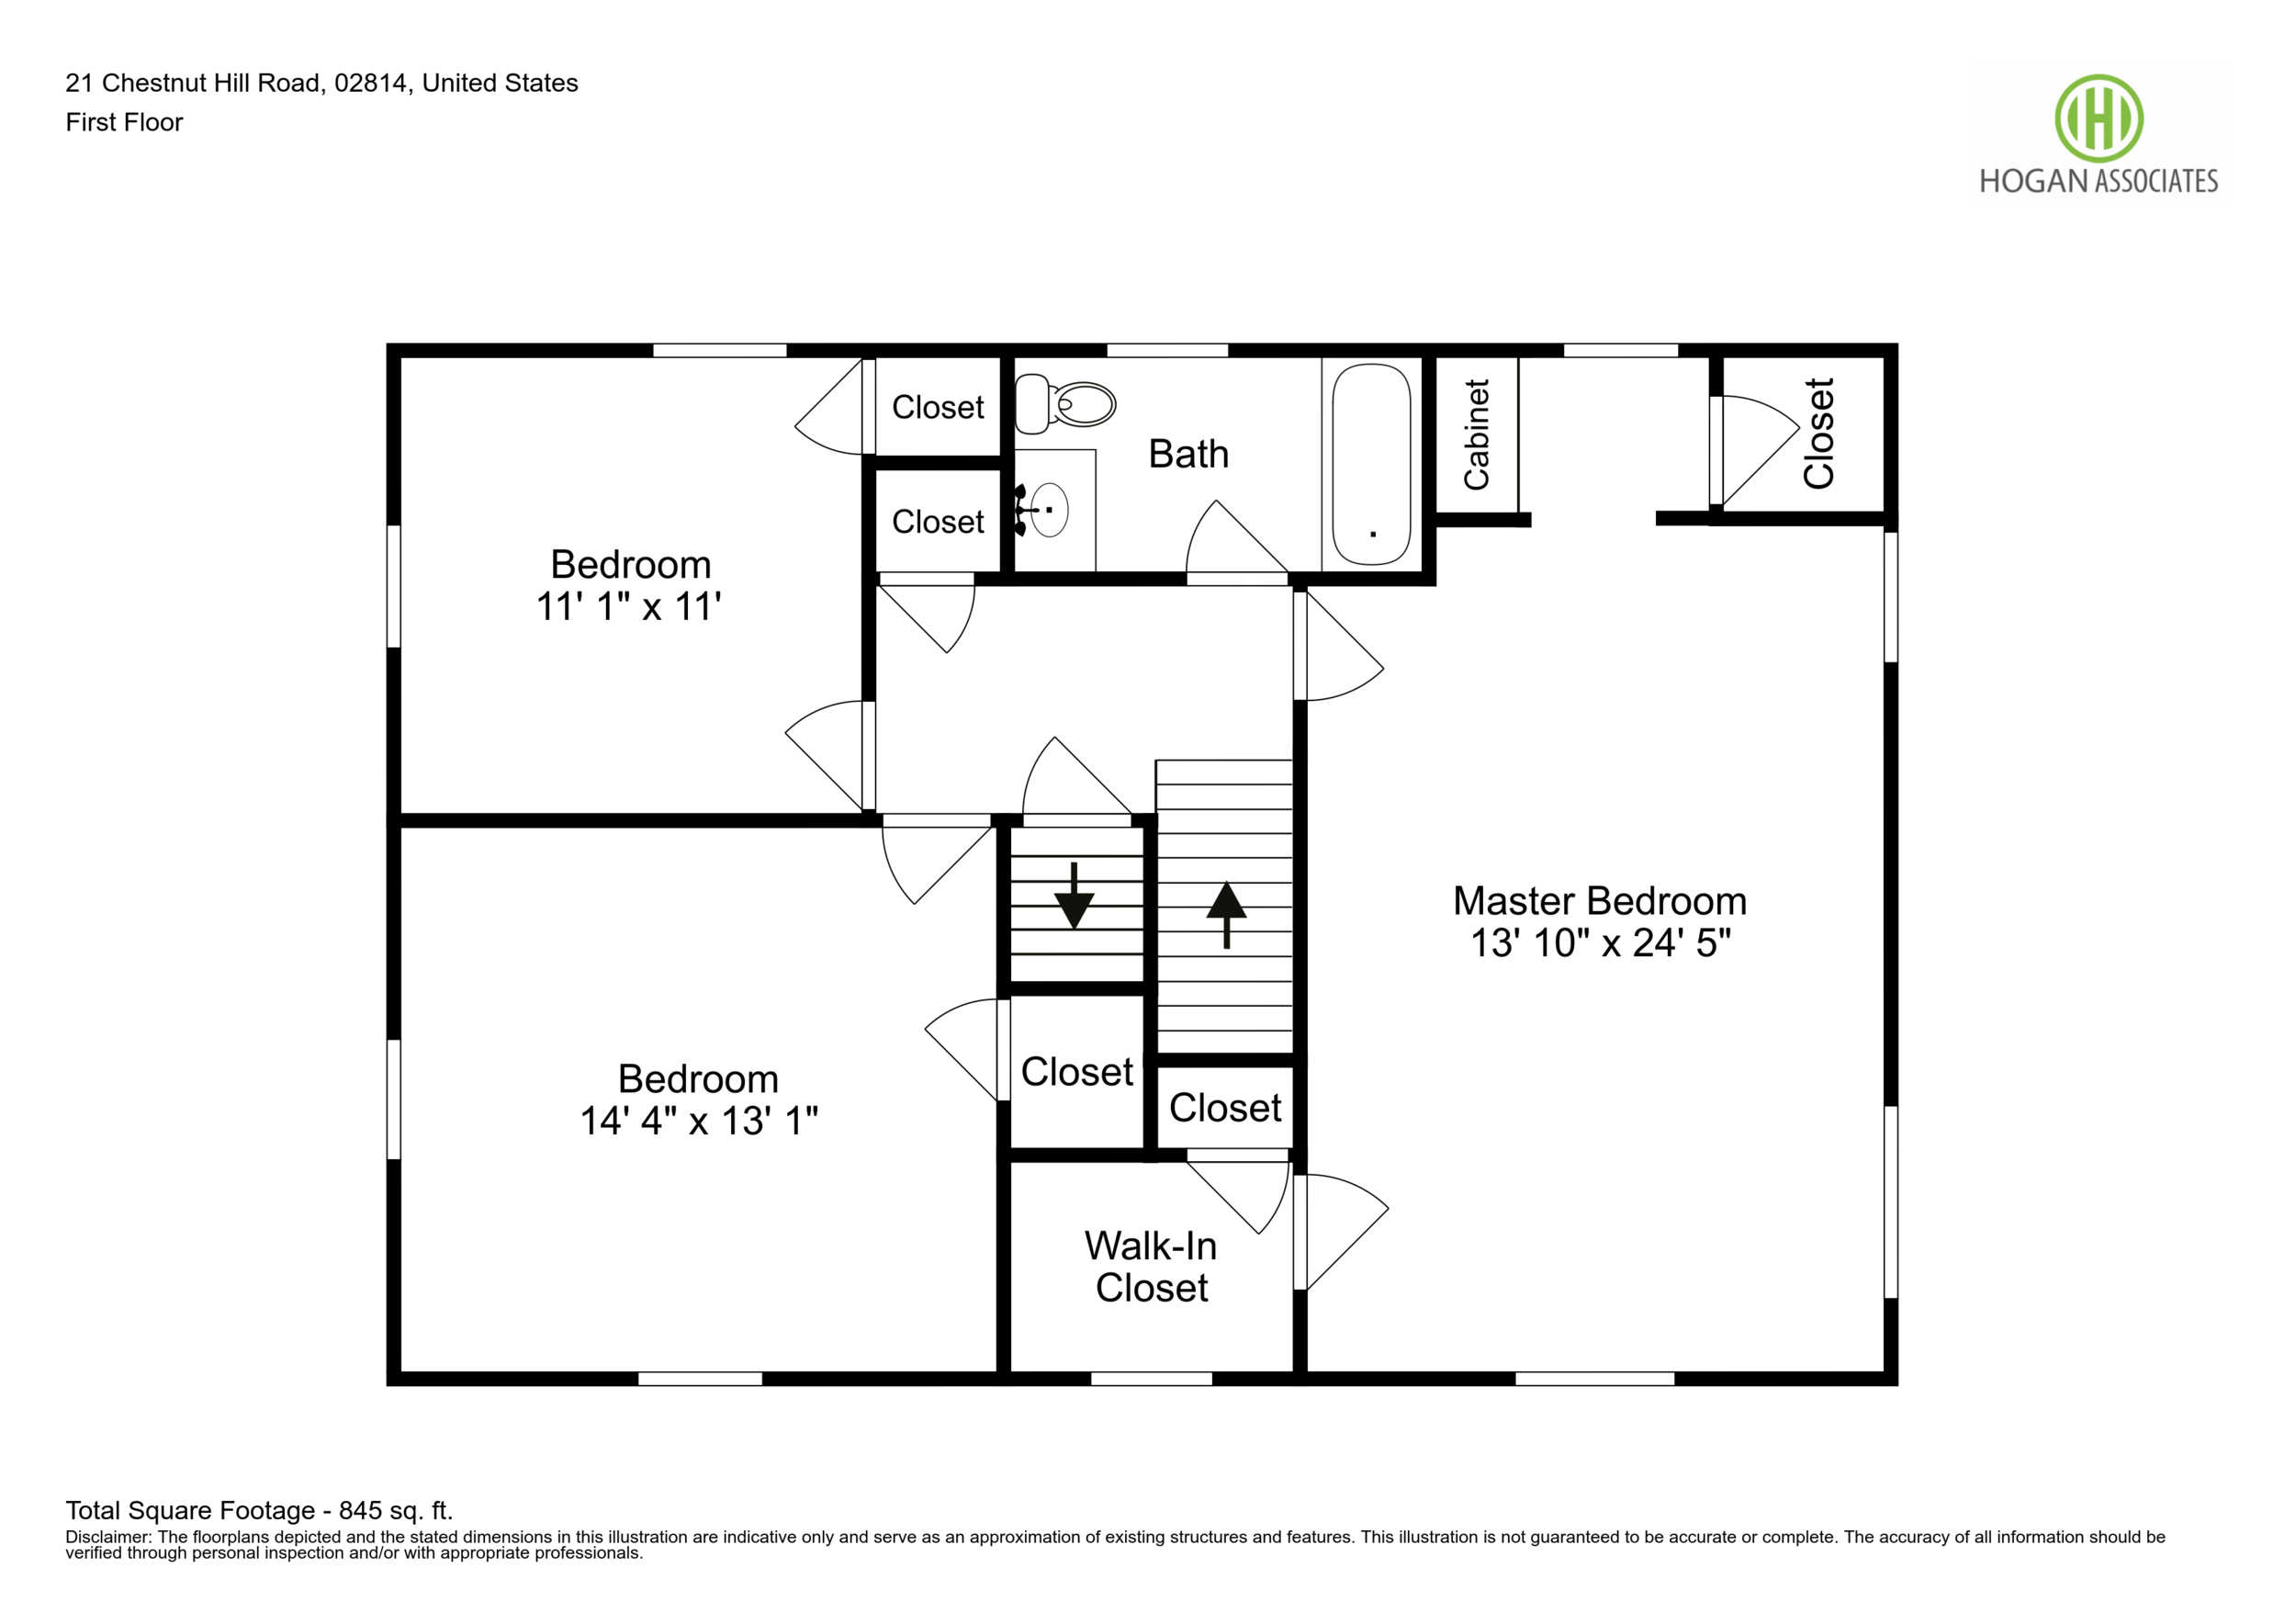 floorPlan-96.png